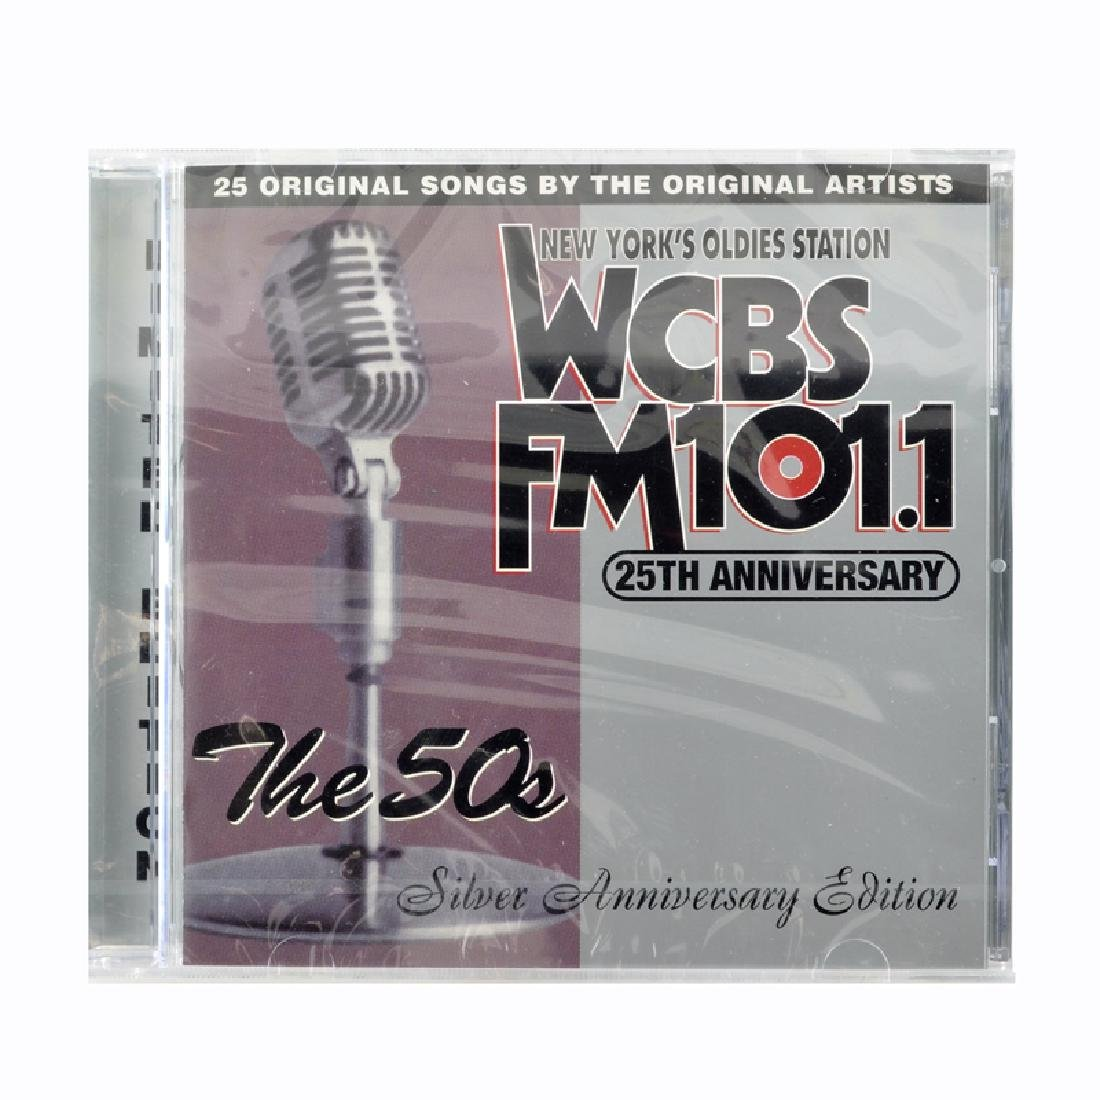 WCBS FM101.1  The 25th Anniversary Album, The 50s CDs